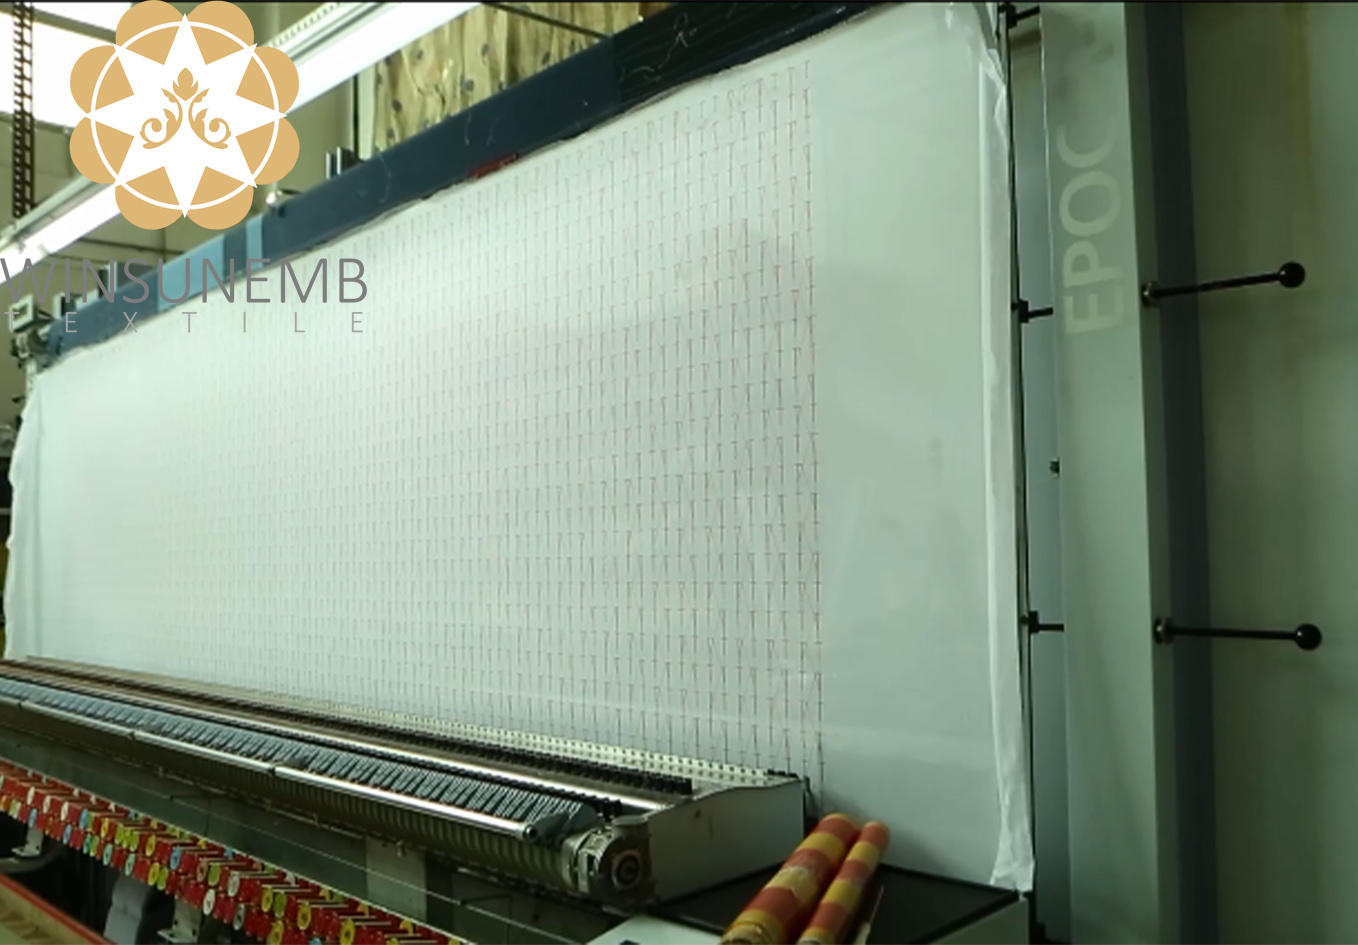 first processes machine production。 the other two machines are: multi-head embroidery machine and sample machine, and there is a second process professional cutting yarn.